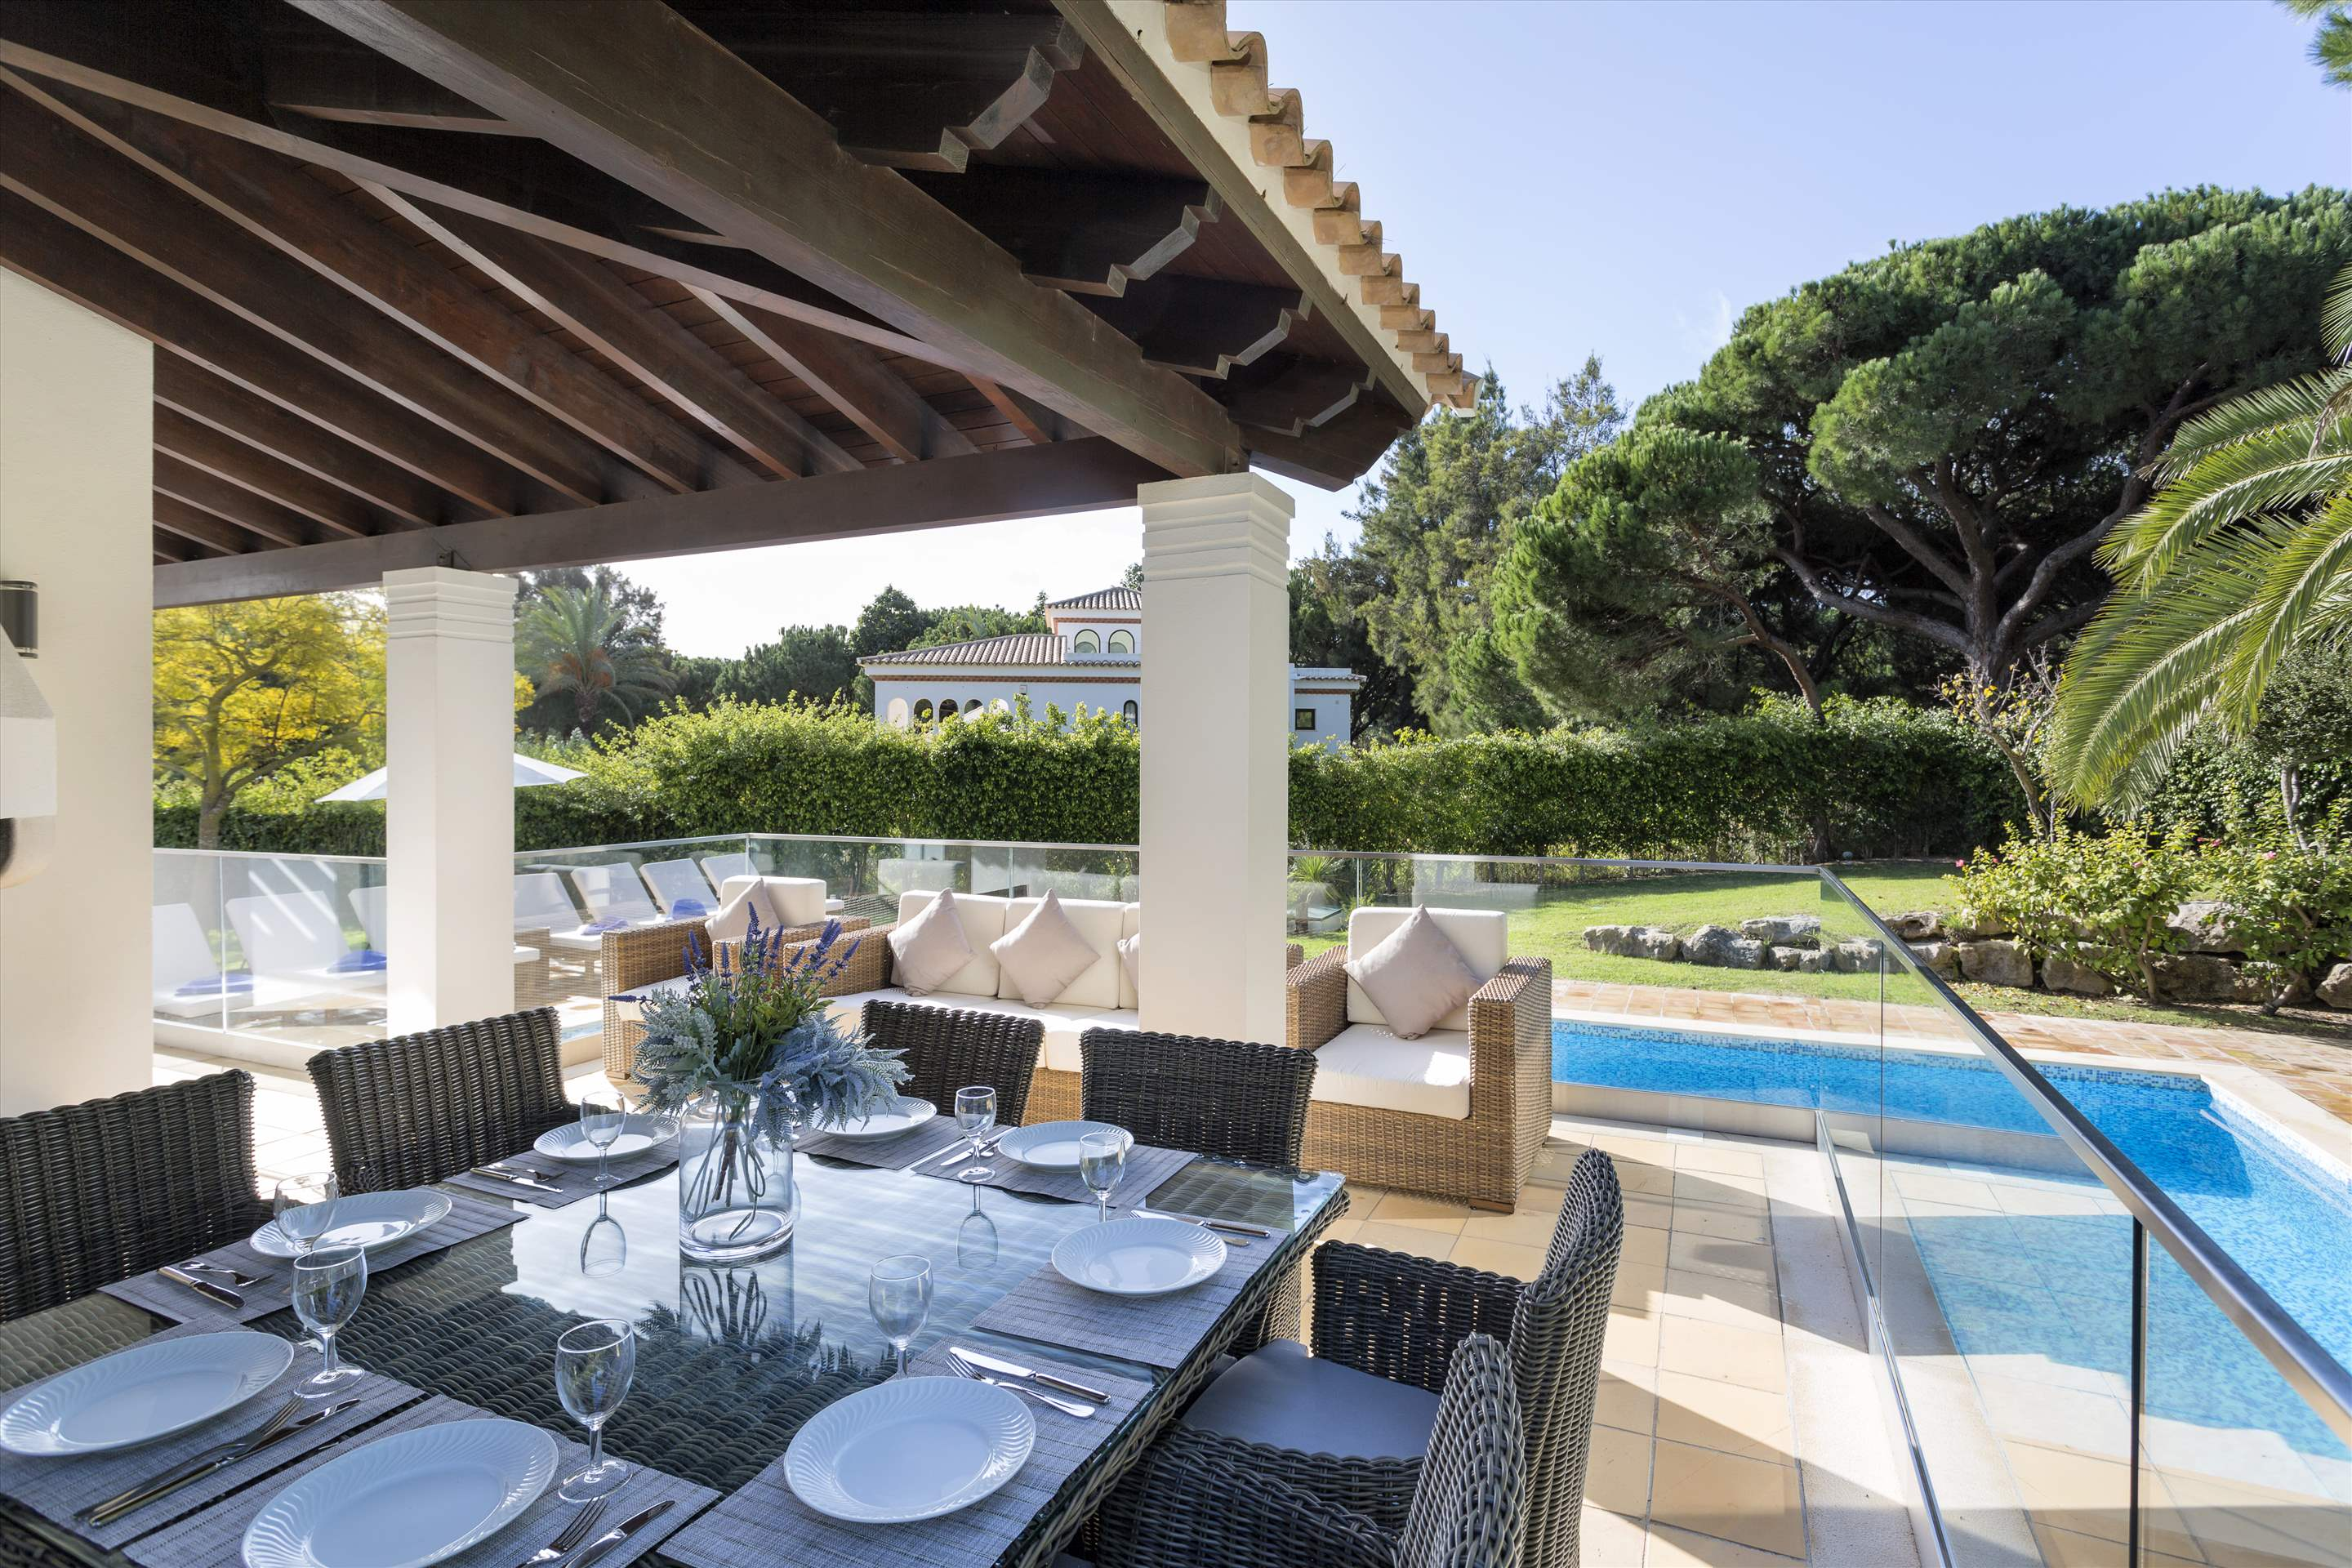 Pine Cliffs Villa Falesia, 4 bedroom rate, main house, 4 bedroom villa in Pine Cliffs Resort, Algarve Photo #3